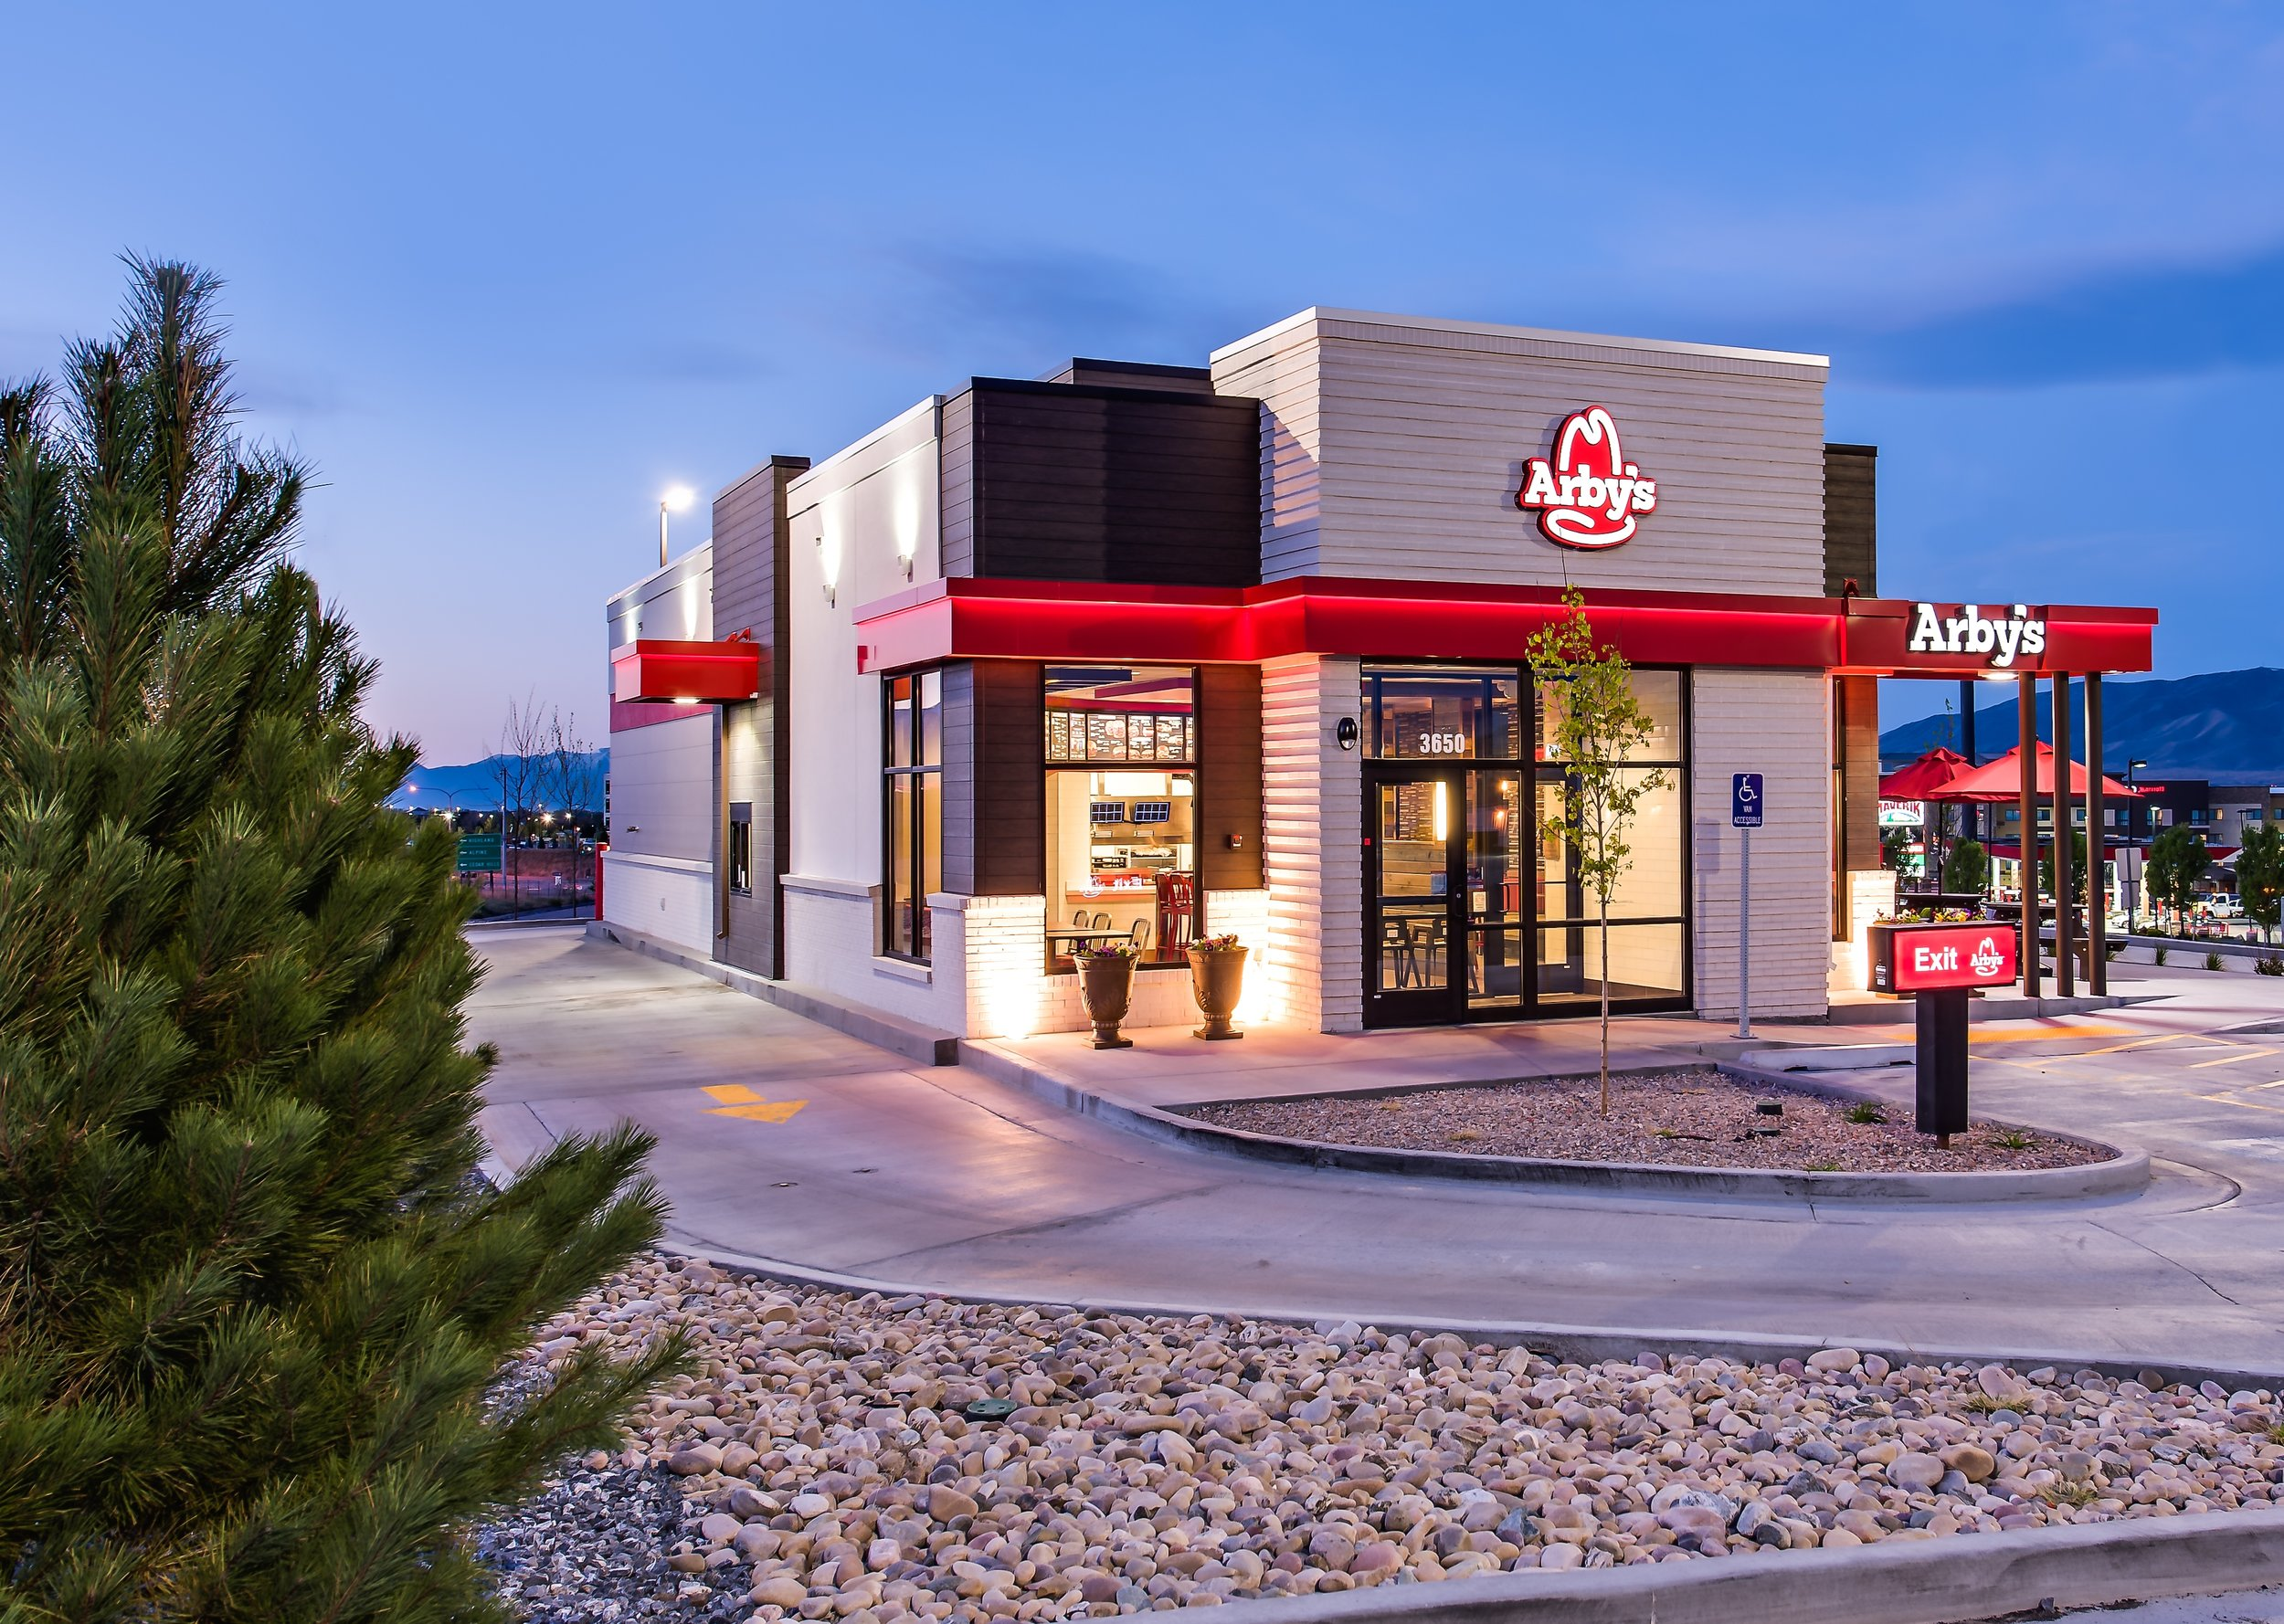 Arby'sLark Point, UT - 5.84% CAP$1,970,000